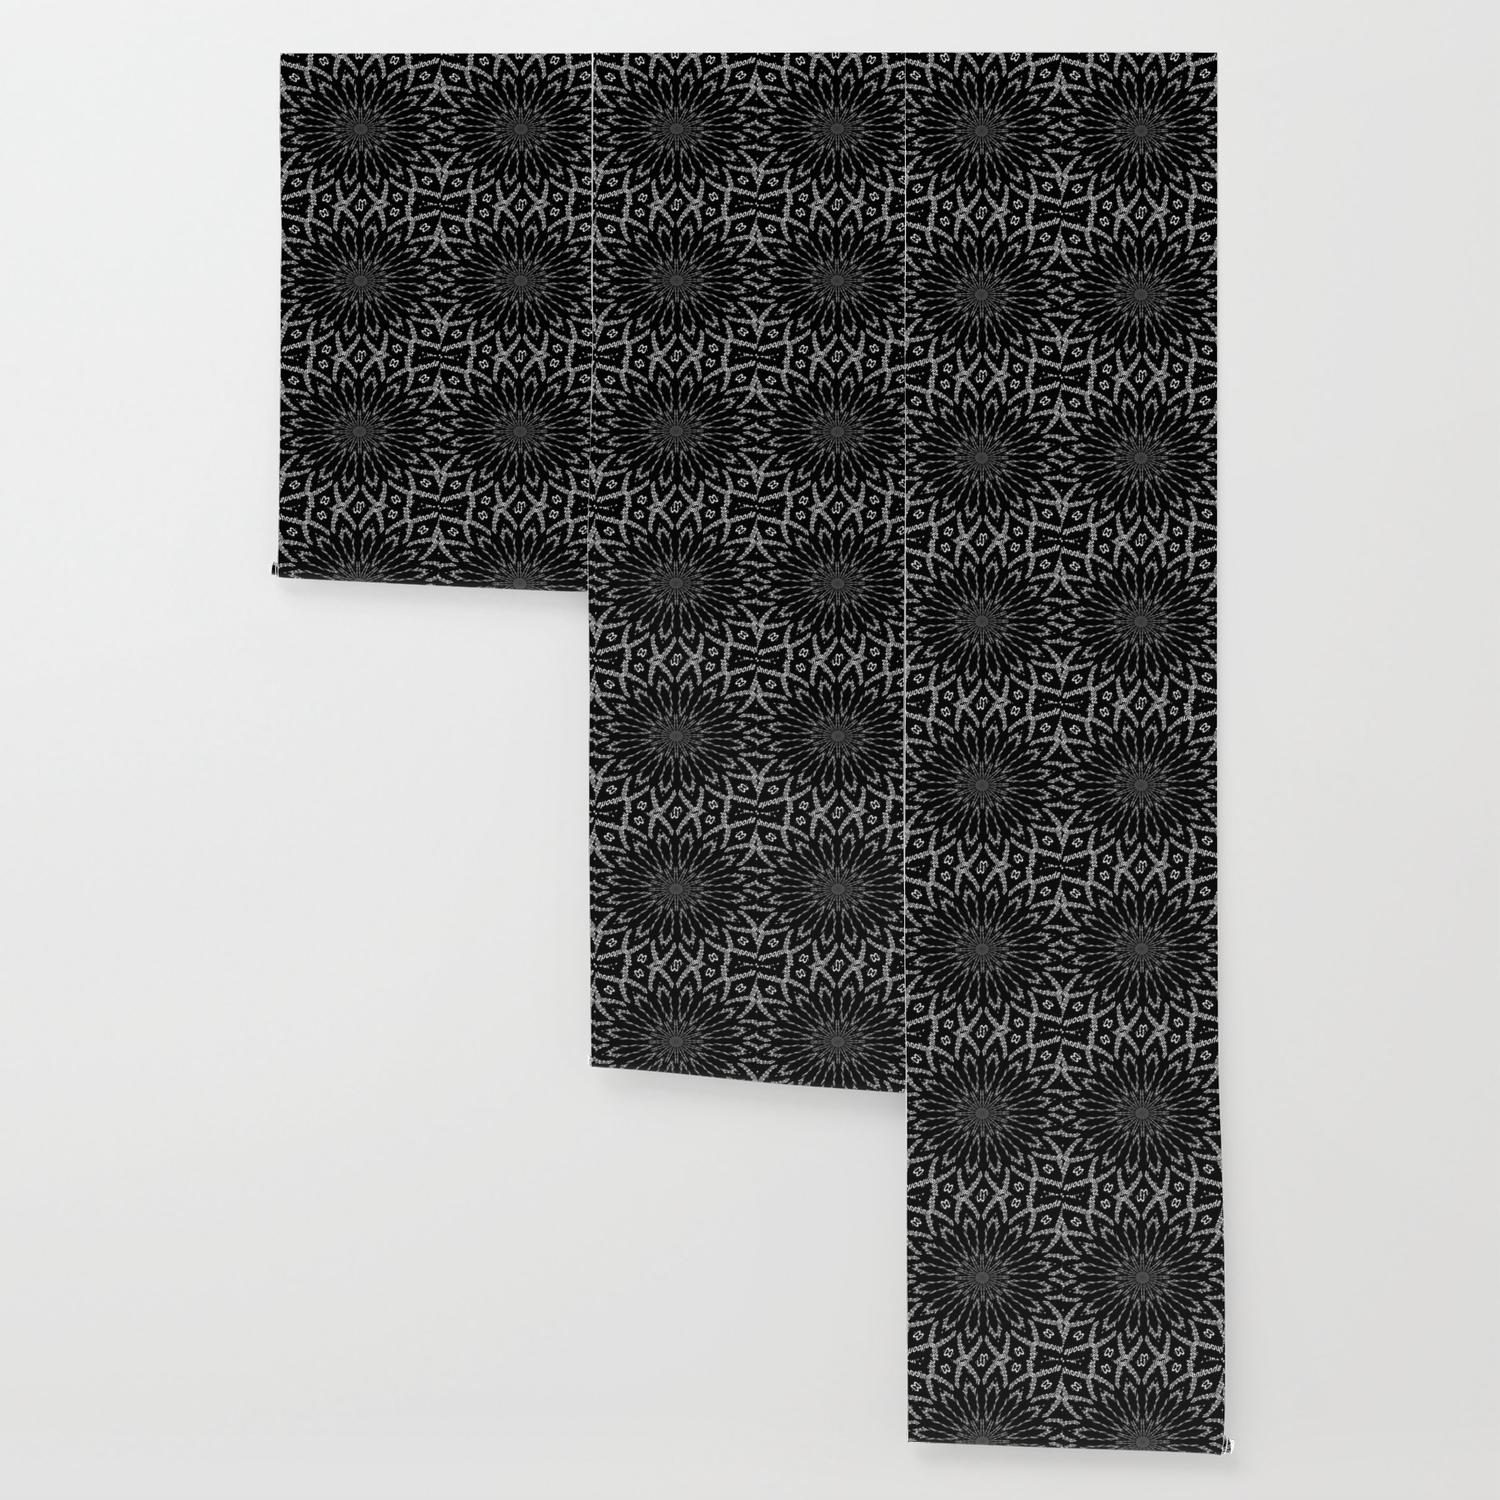 Shooting Star Black And White Typographic Kaleidoscope Wallpaper By Taiche Society6